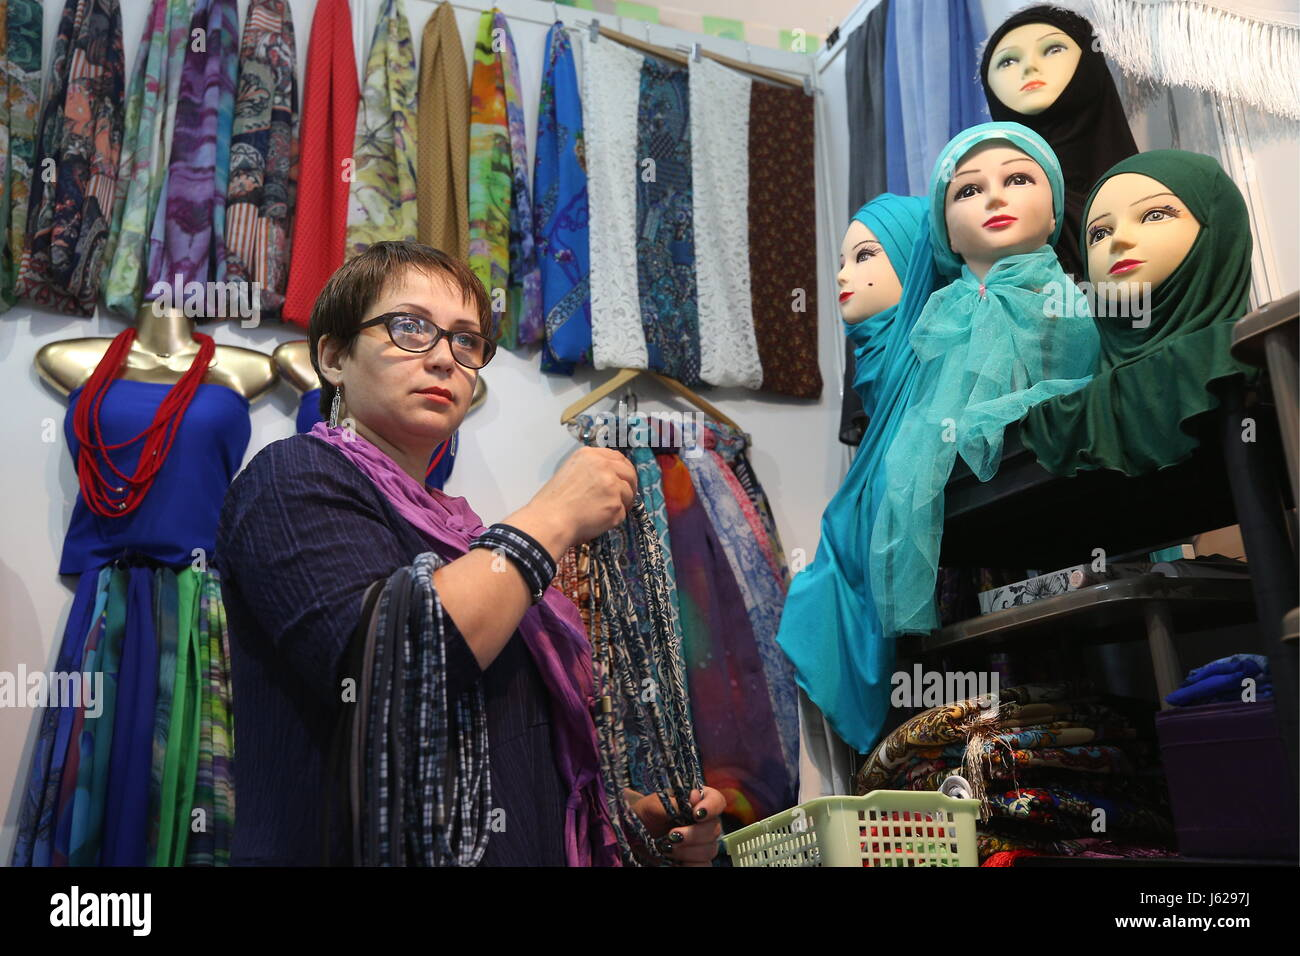 Kazan, Russia. 18th May, 2017. Hijabs on display at the Russia Halal Expo exhibition as part of the 9th International - Stock Image